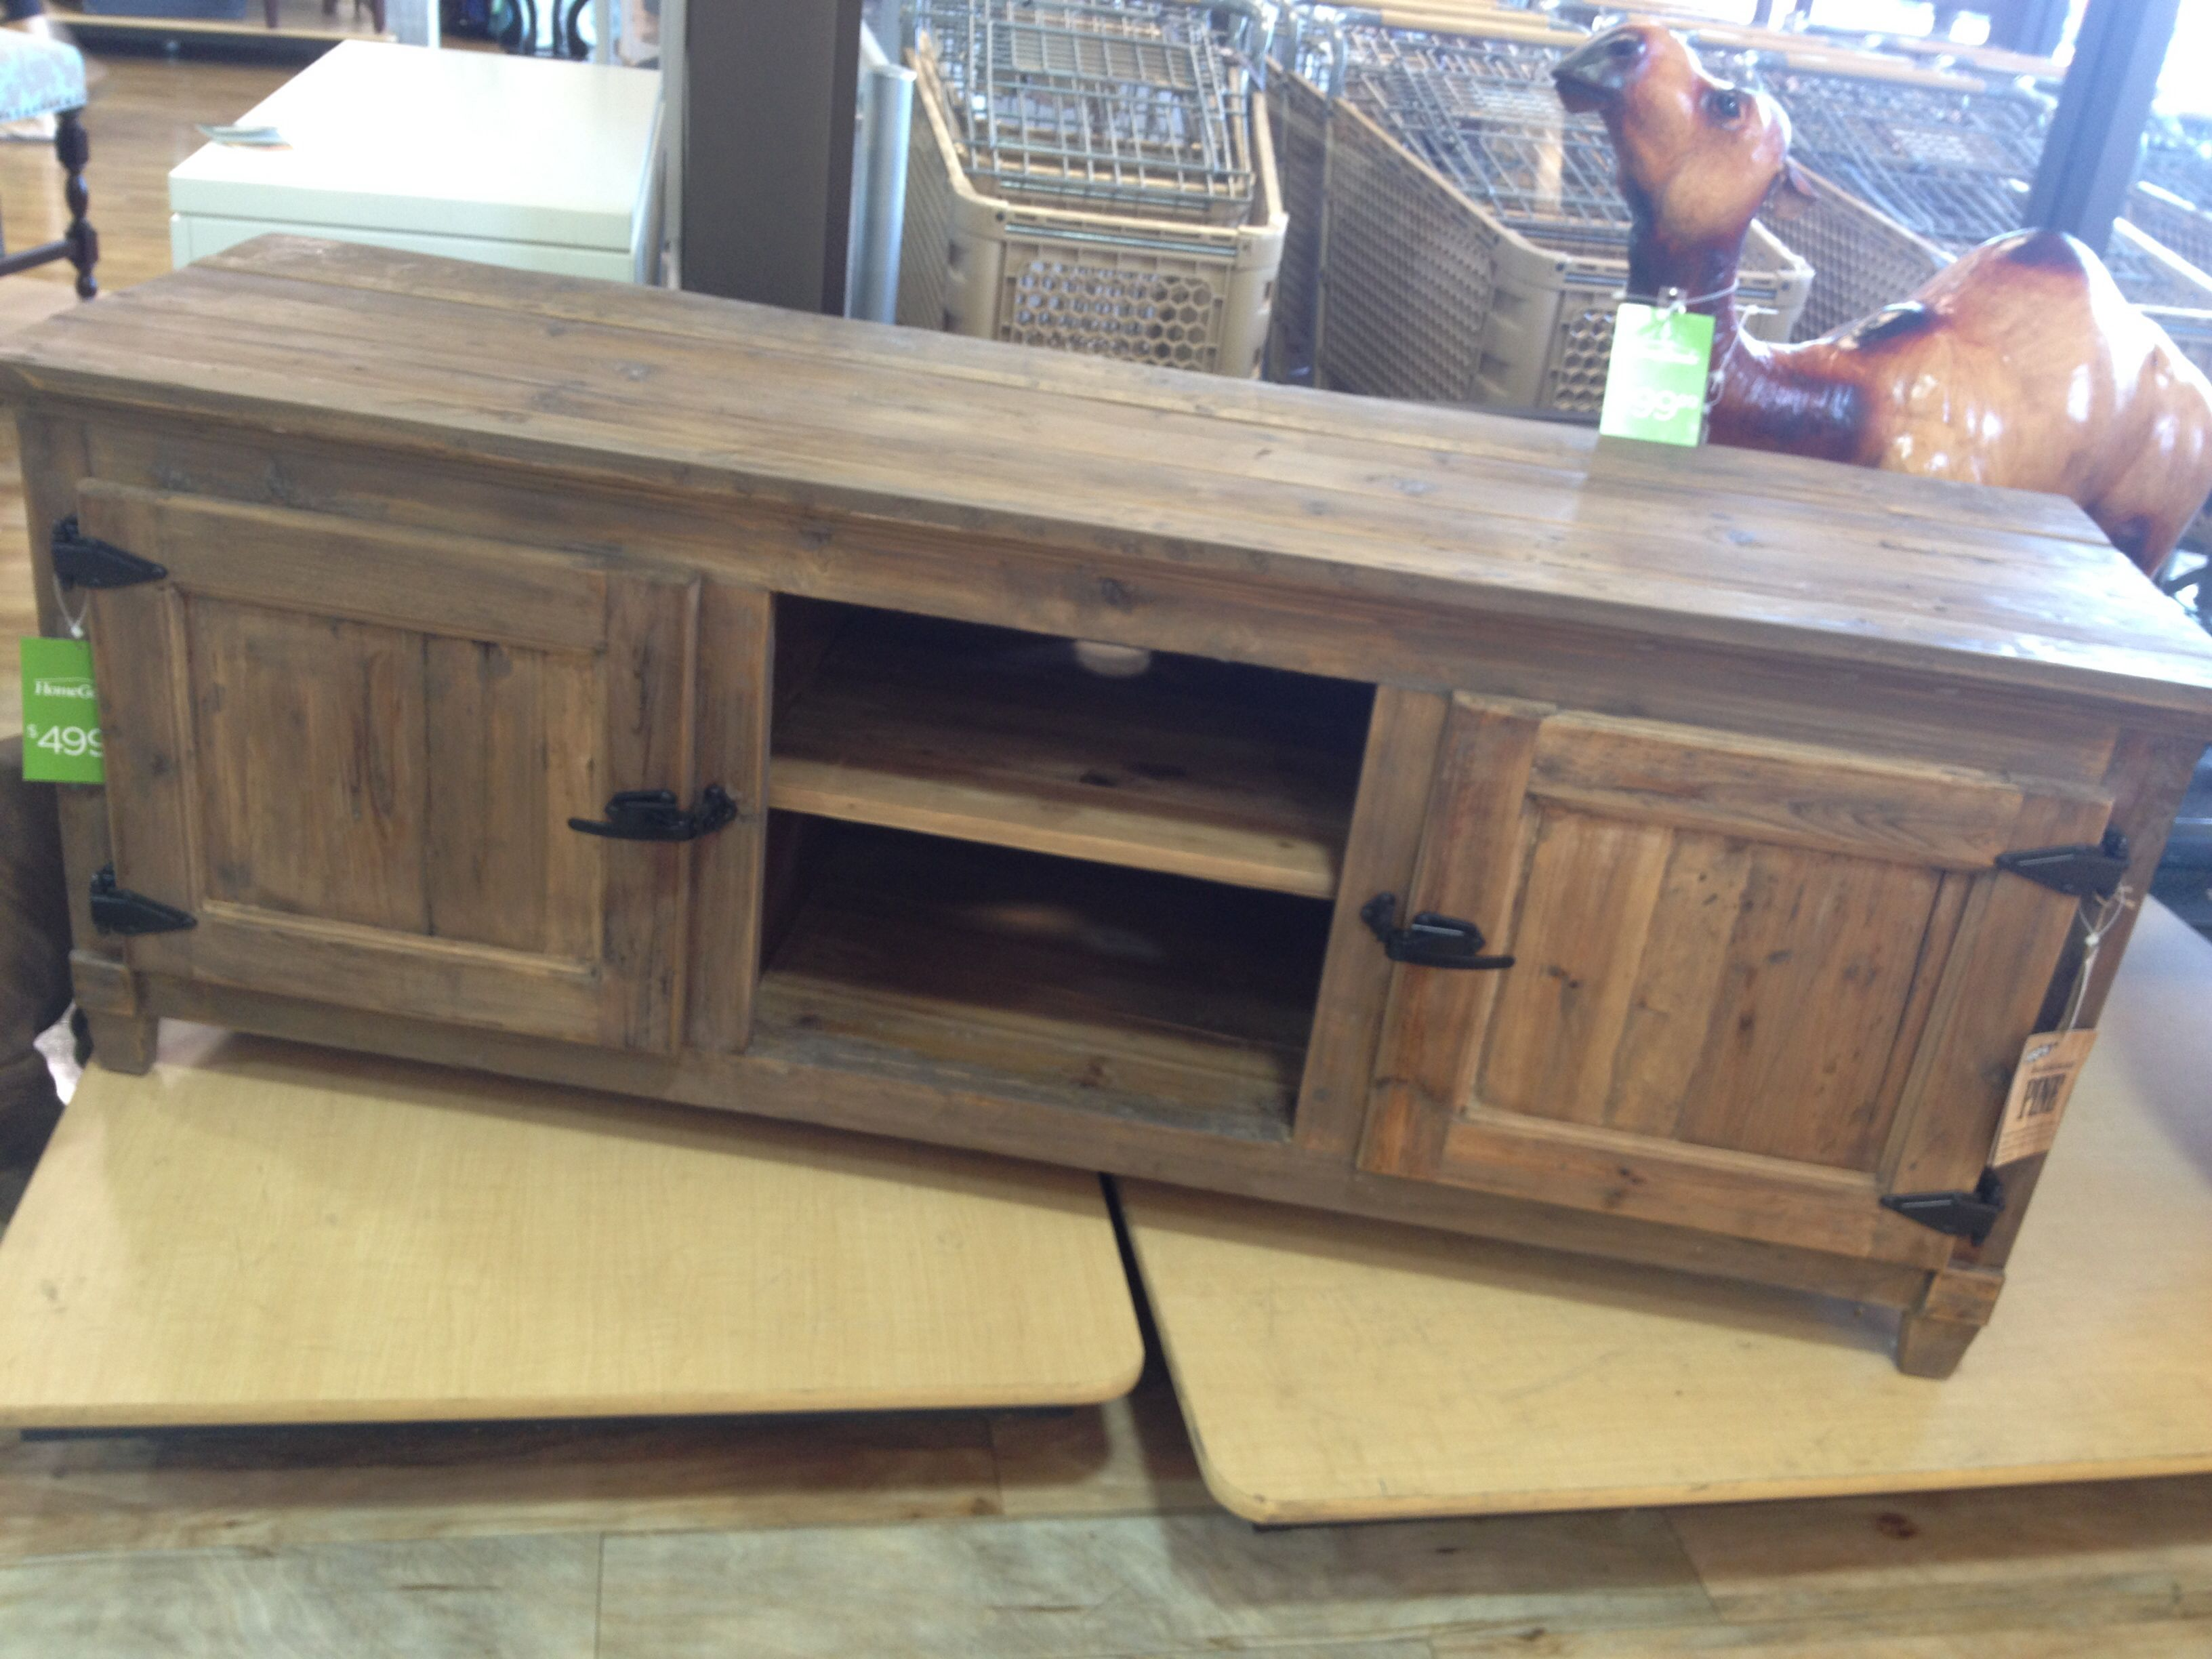 Best Pallet Projects Wood entertainment center, Tv stand